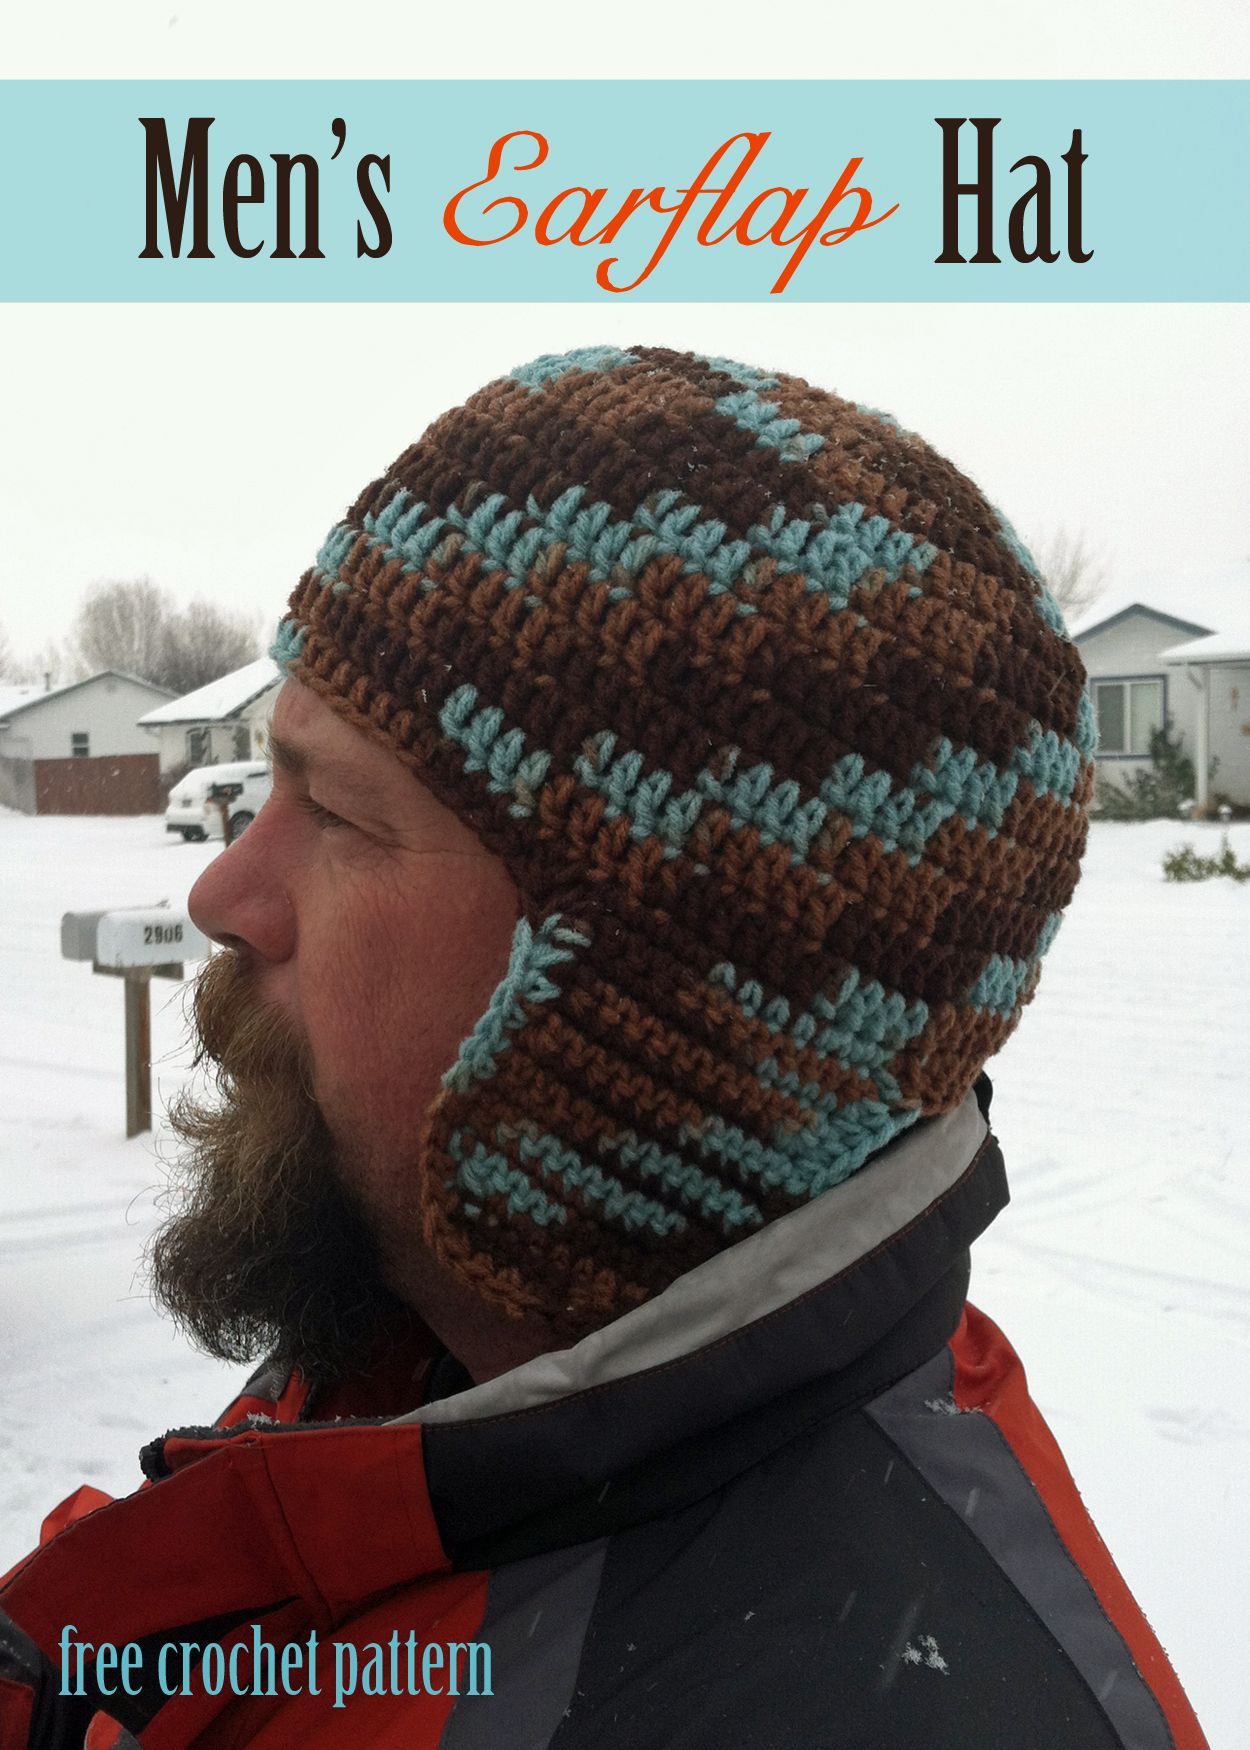 Free Crochet Ear Flap Patterns | Free Crochet Pattern - Mens Earflap ...